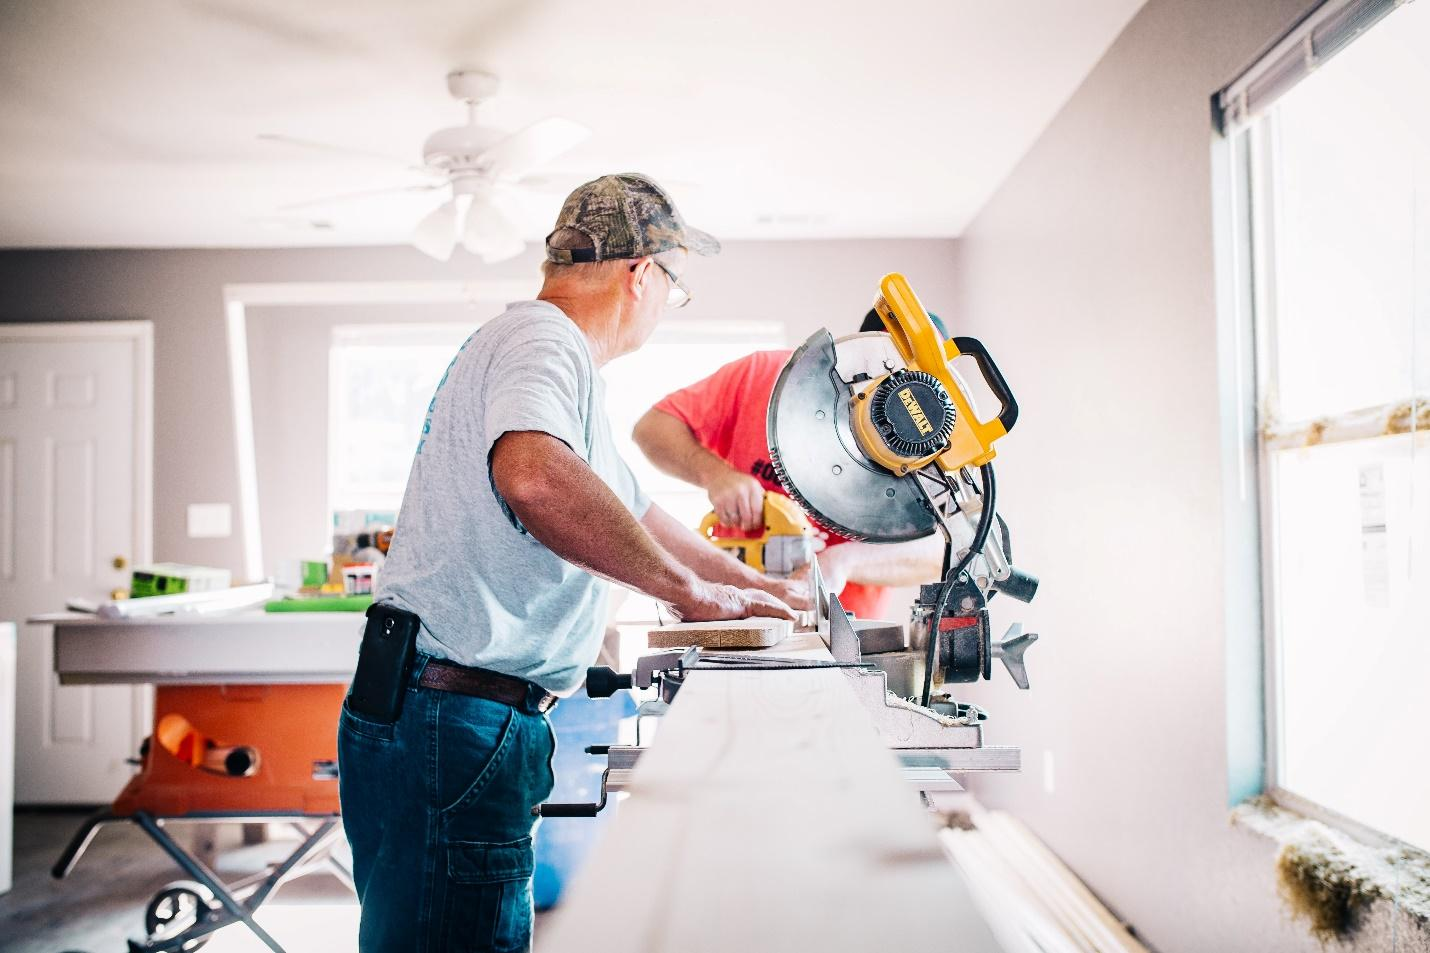 Two people working on a home improvement project